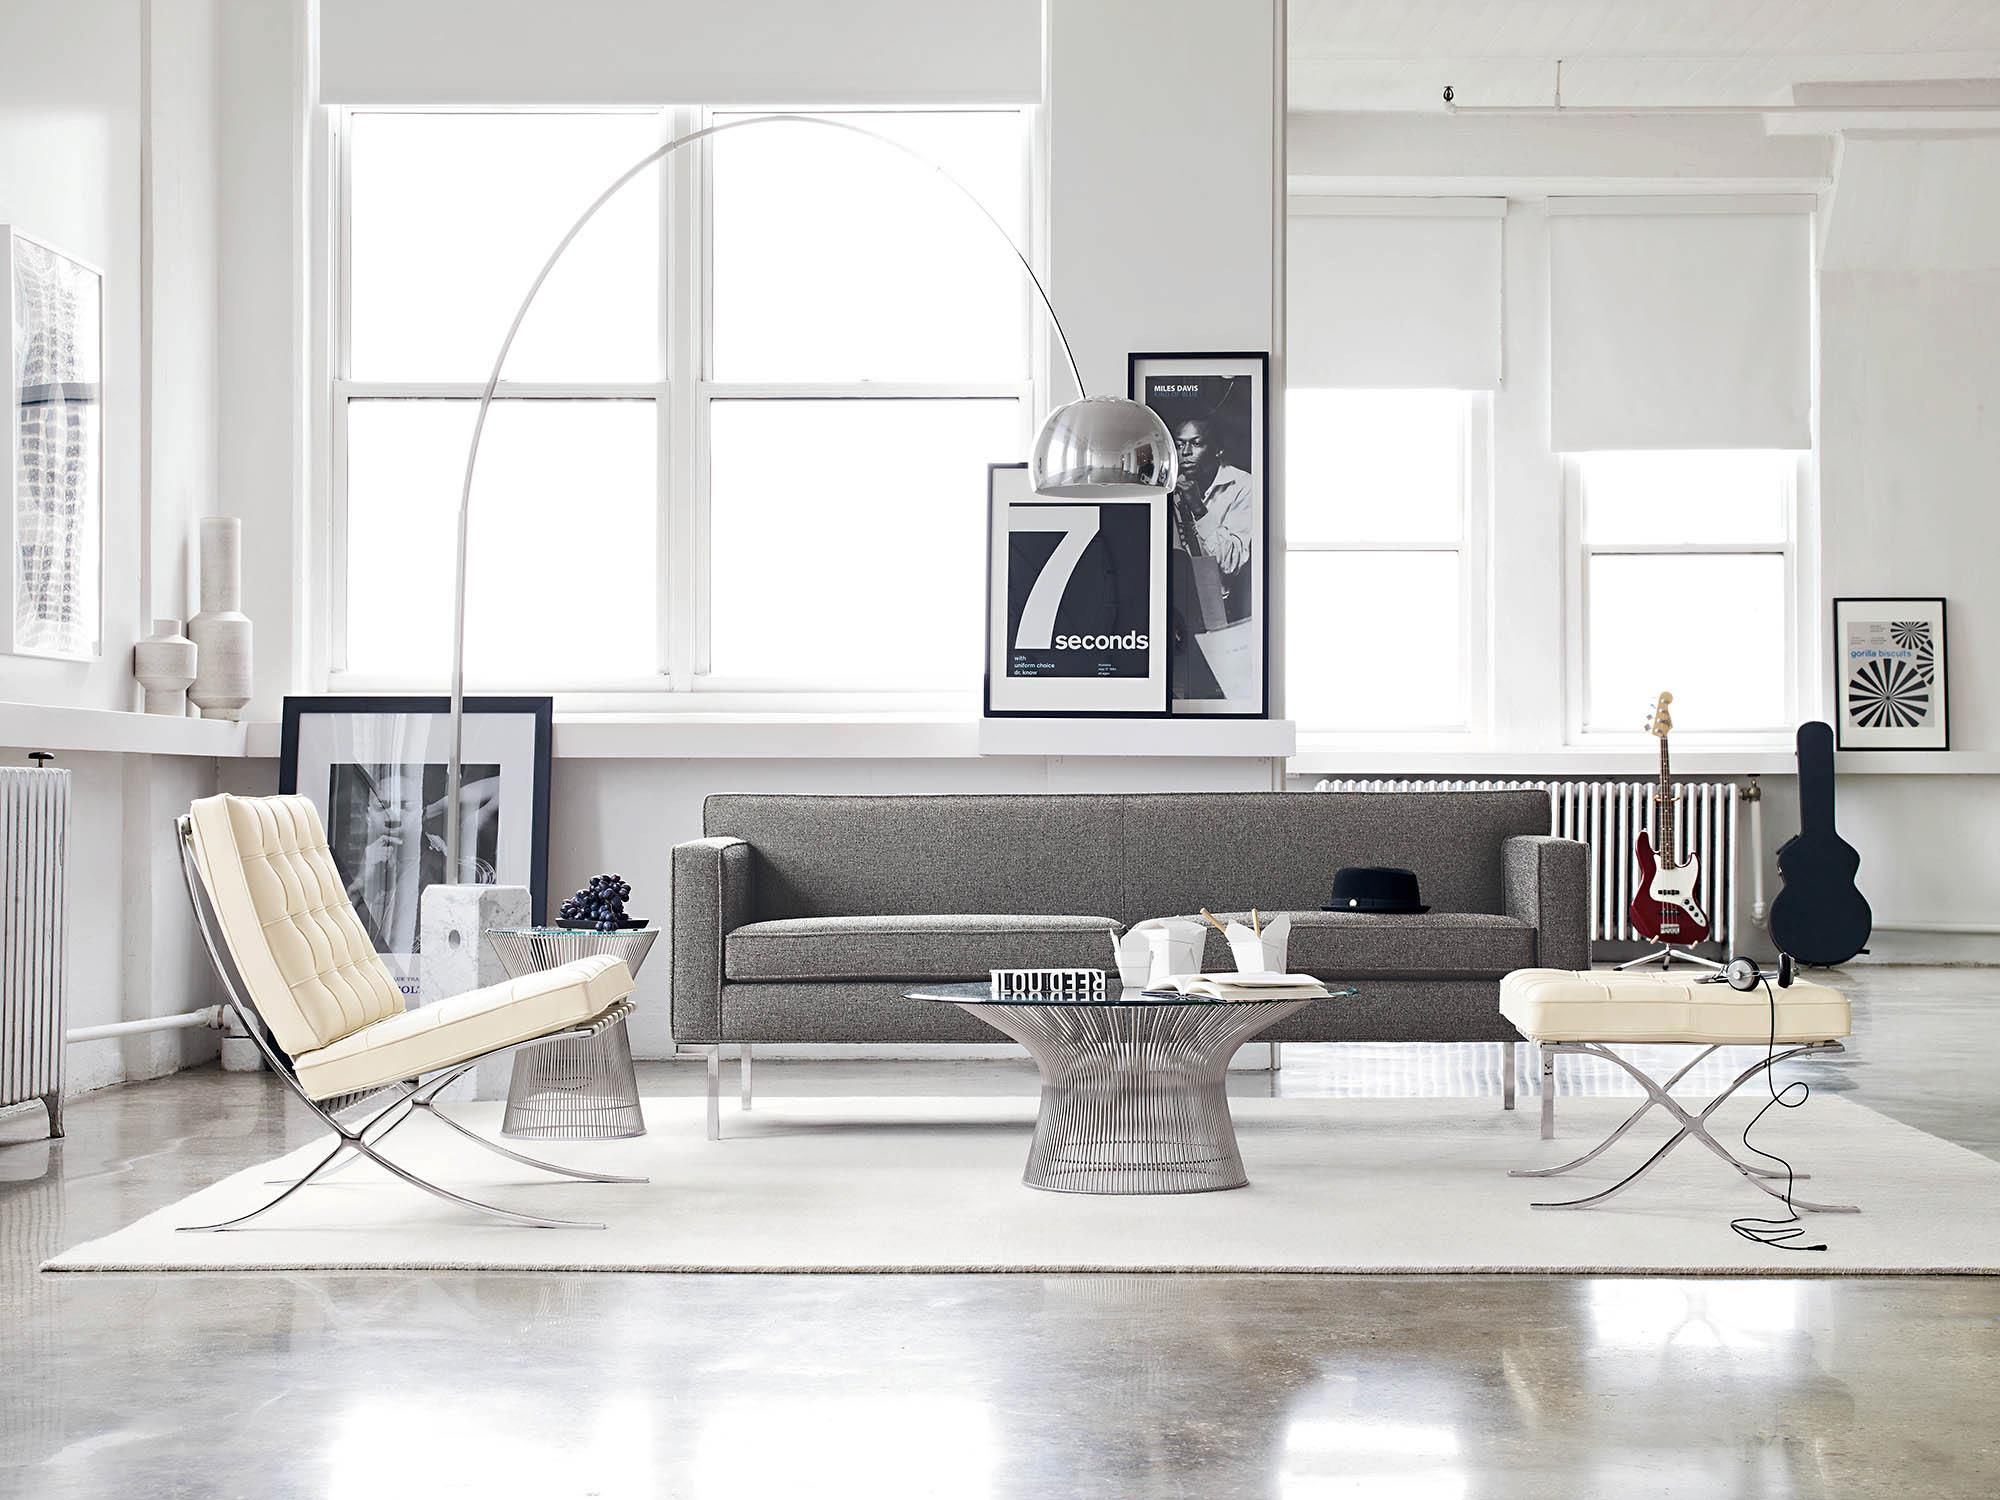 Living Room With Barcelona Chair (by Mies Van Der Rohe)